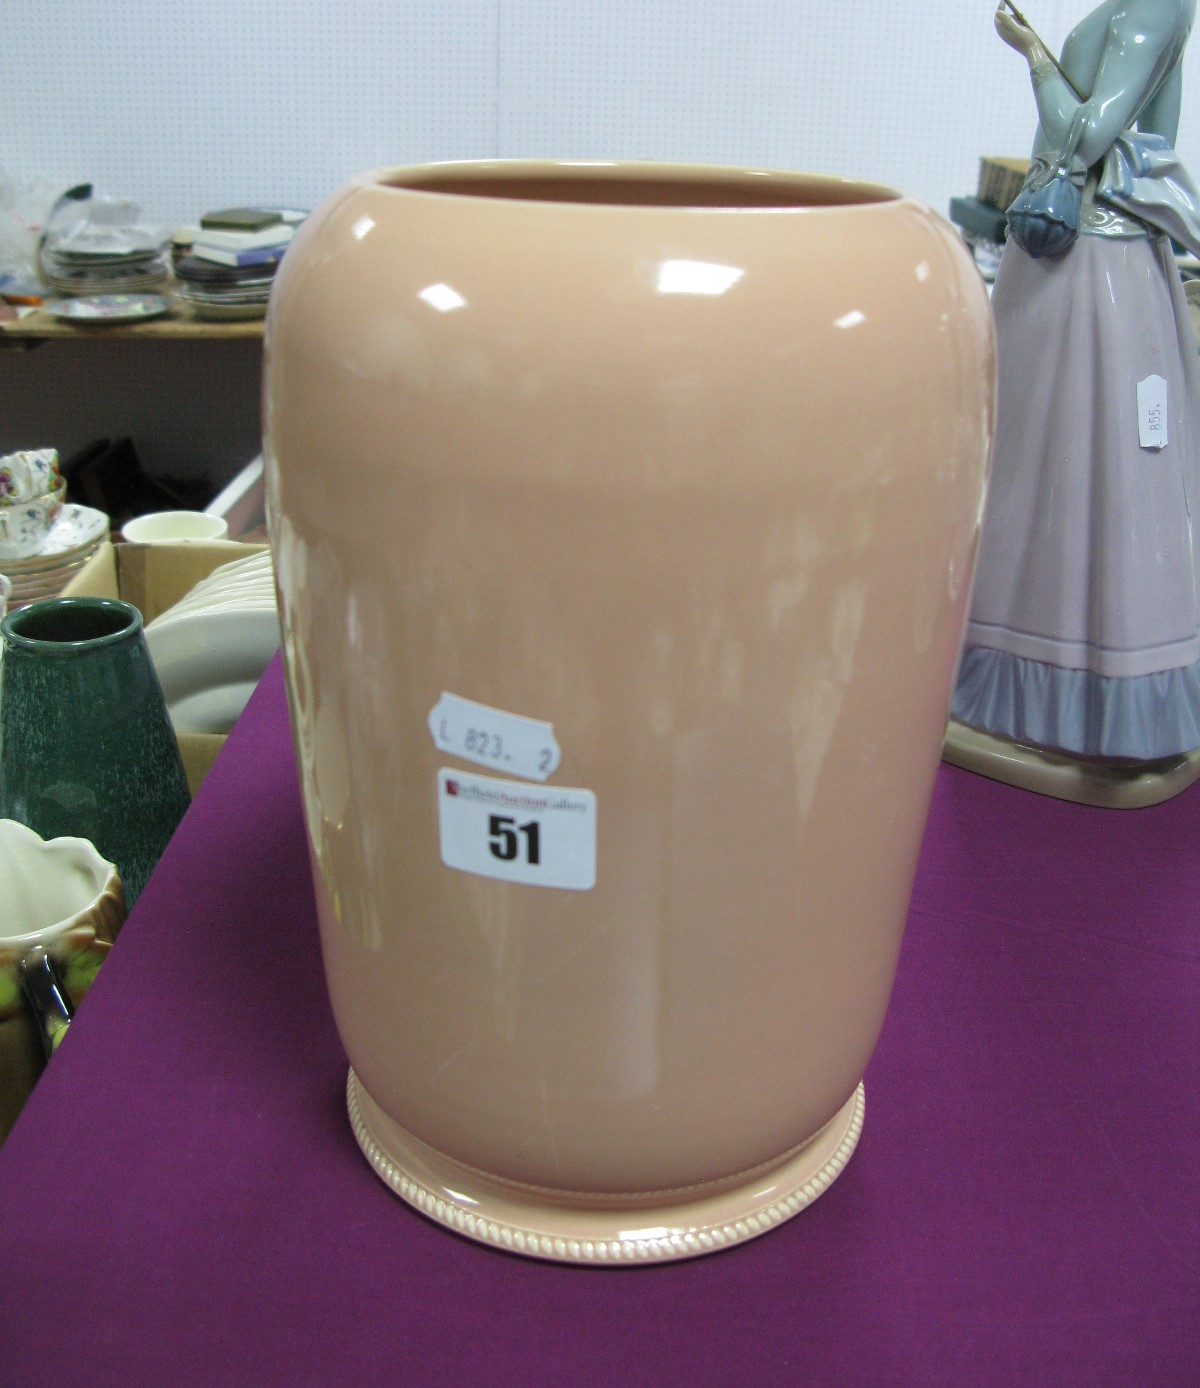 Susie Cooper Pottery Vase, in salmon pink, with ropetwist base, impressed Susie Cooper reference